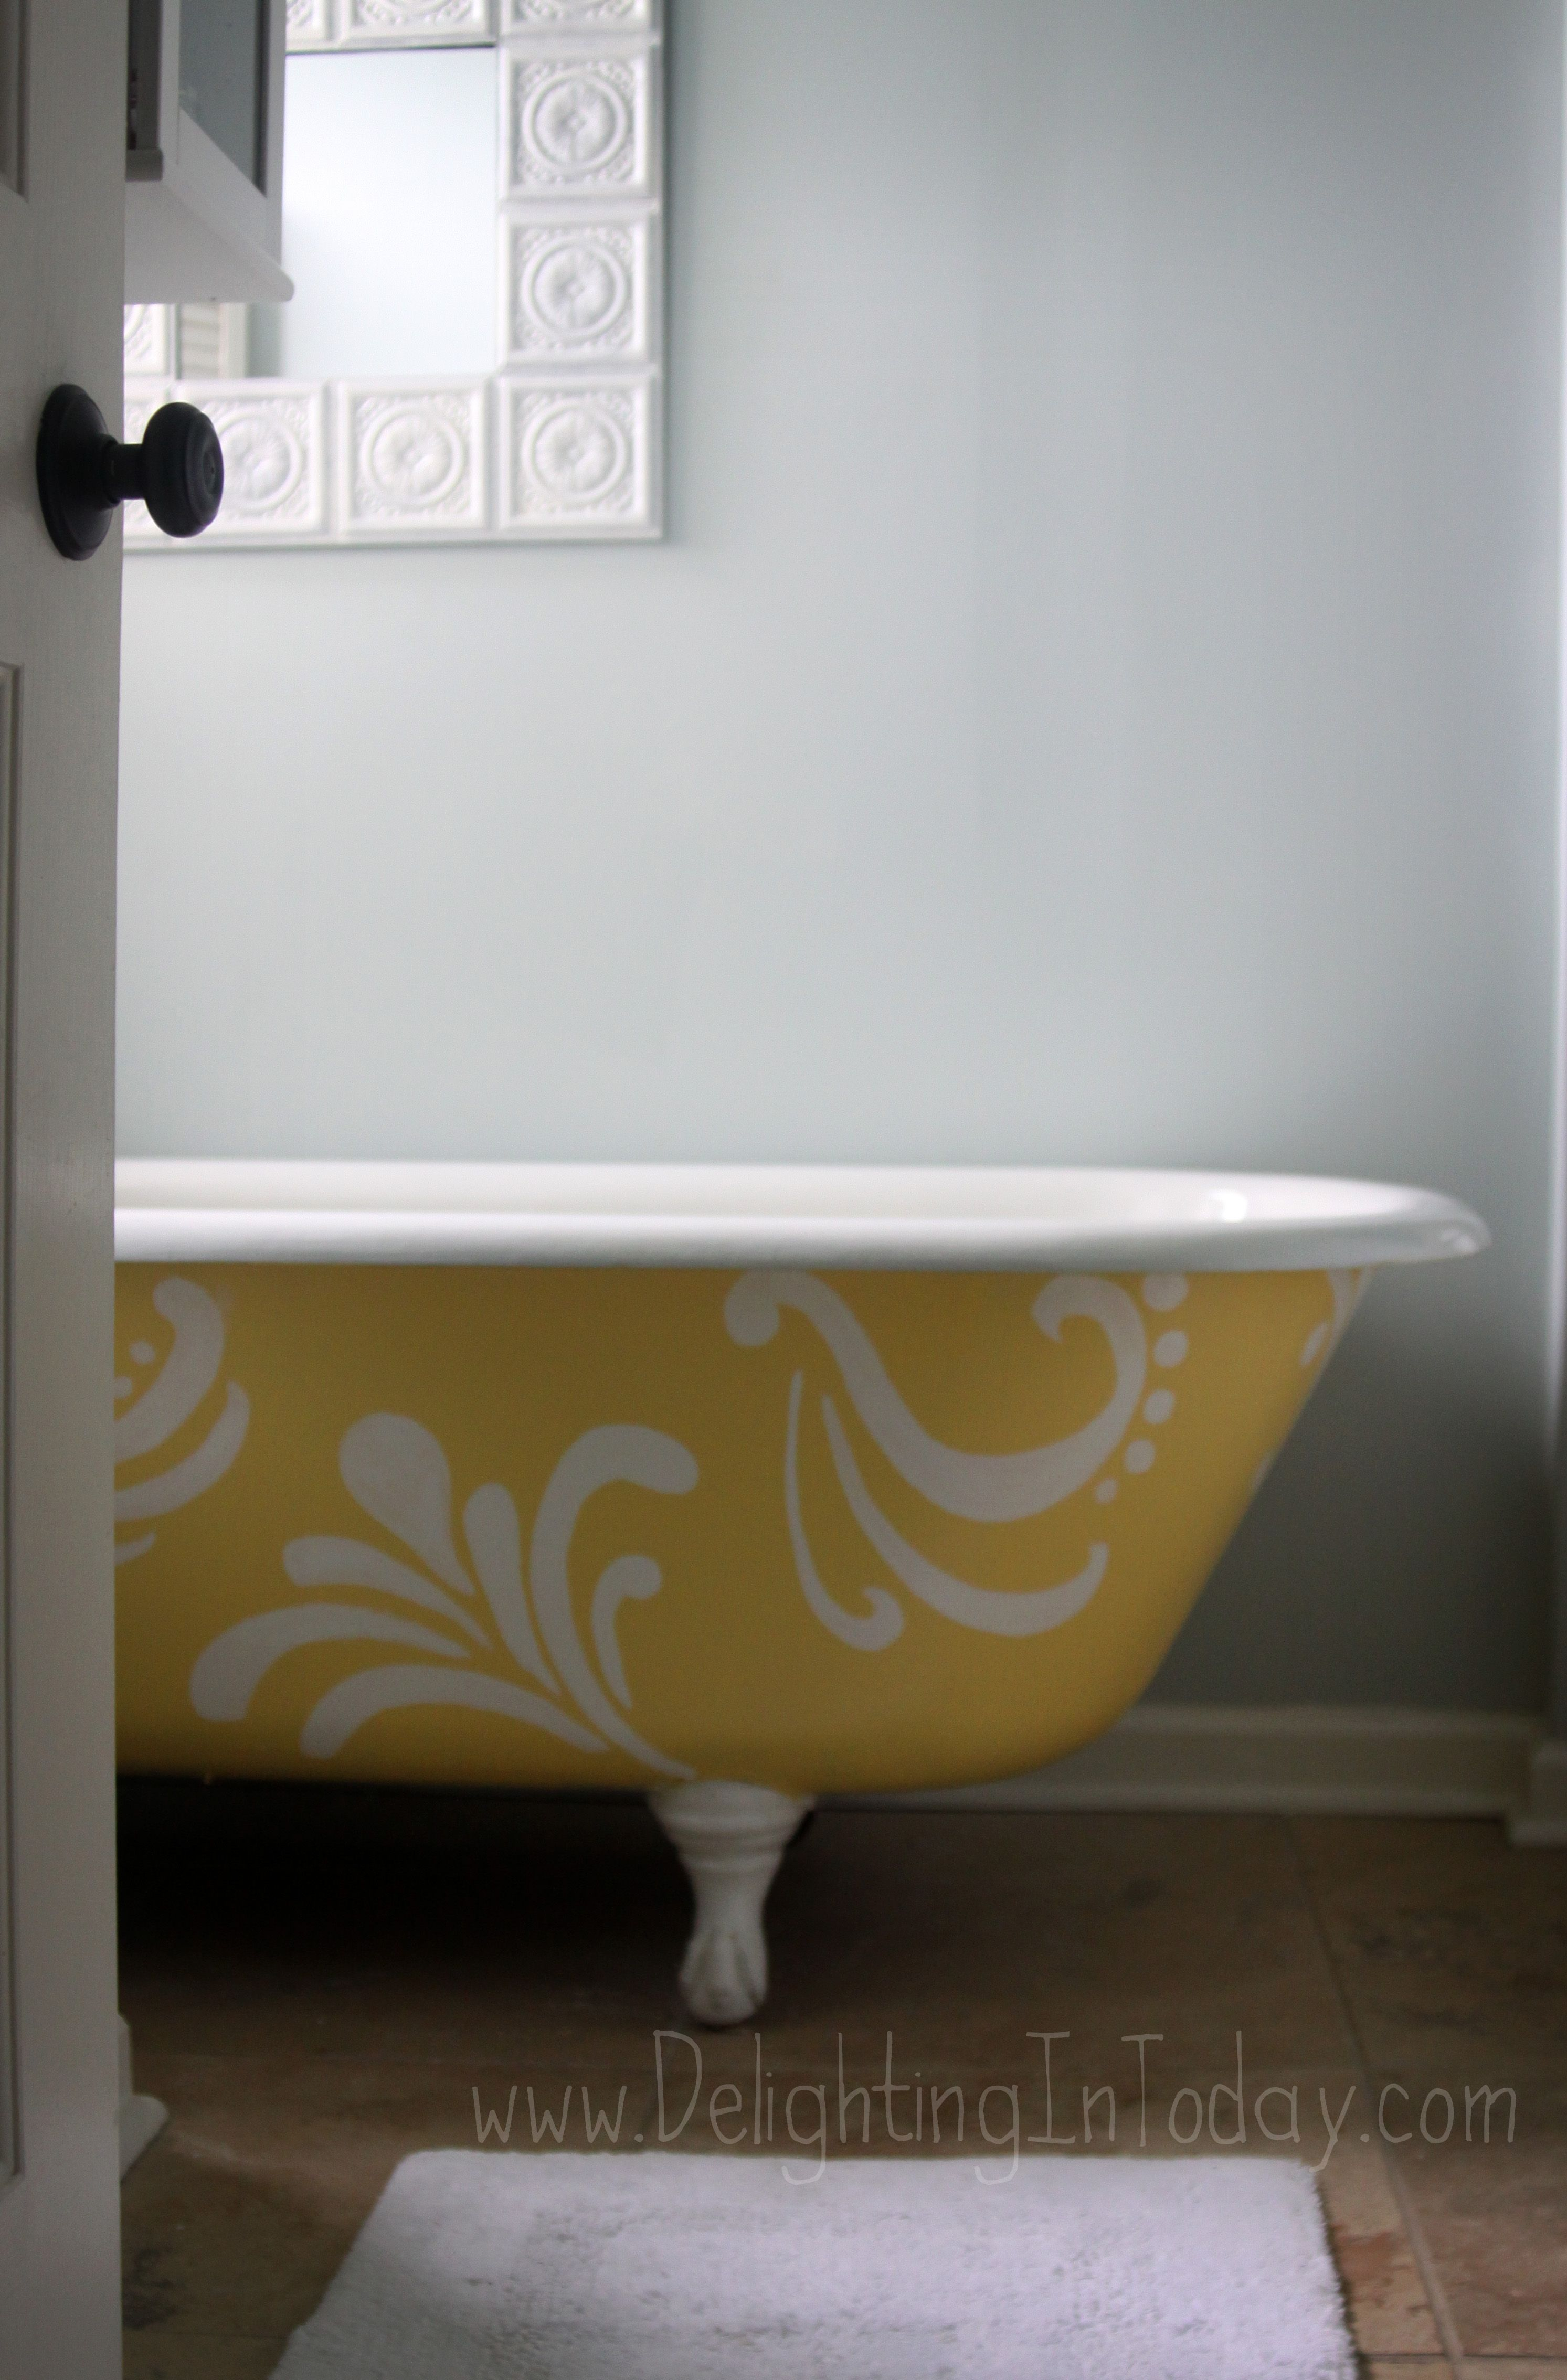 How i 39 m going to paint the clawfoot tub at the lakehouse decorating pinterest bathtub - Painting clawfoot tub exterior paint ...